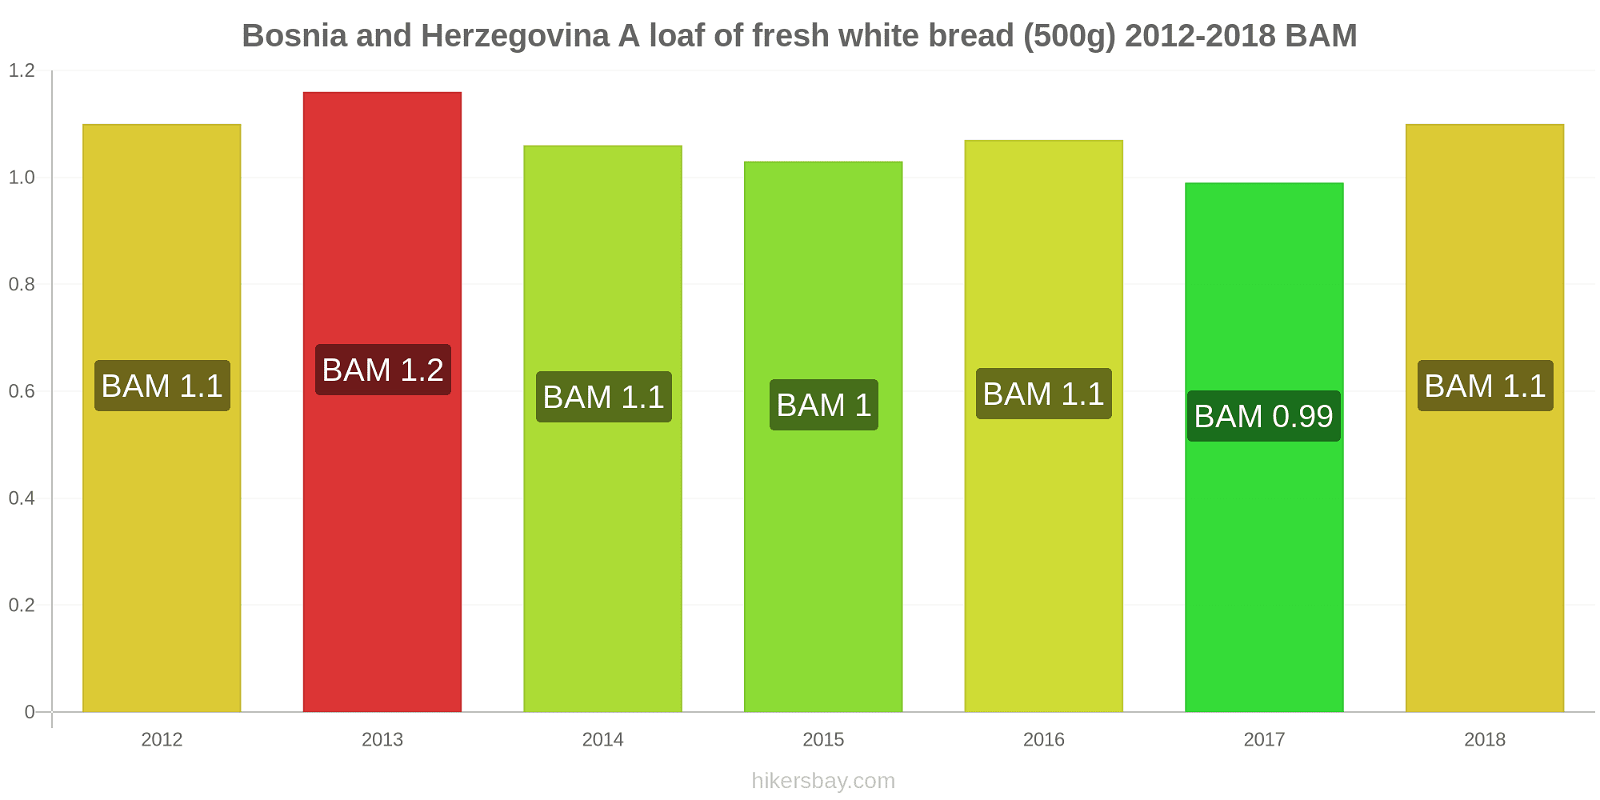 Bosnia and Herzegovina price changes A loaf of fresh white bread (500g) hikersbay.com